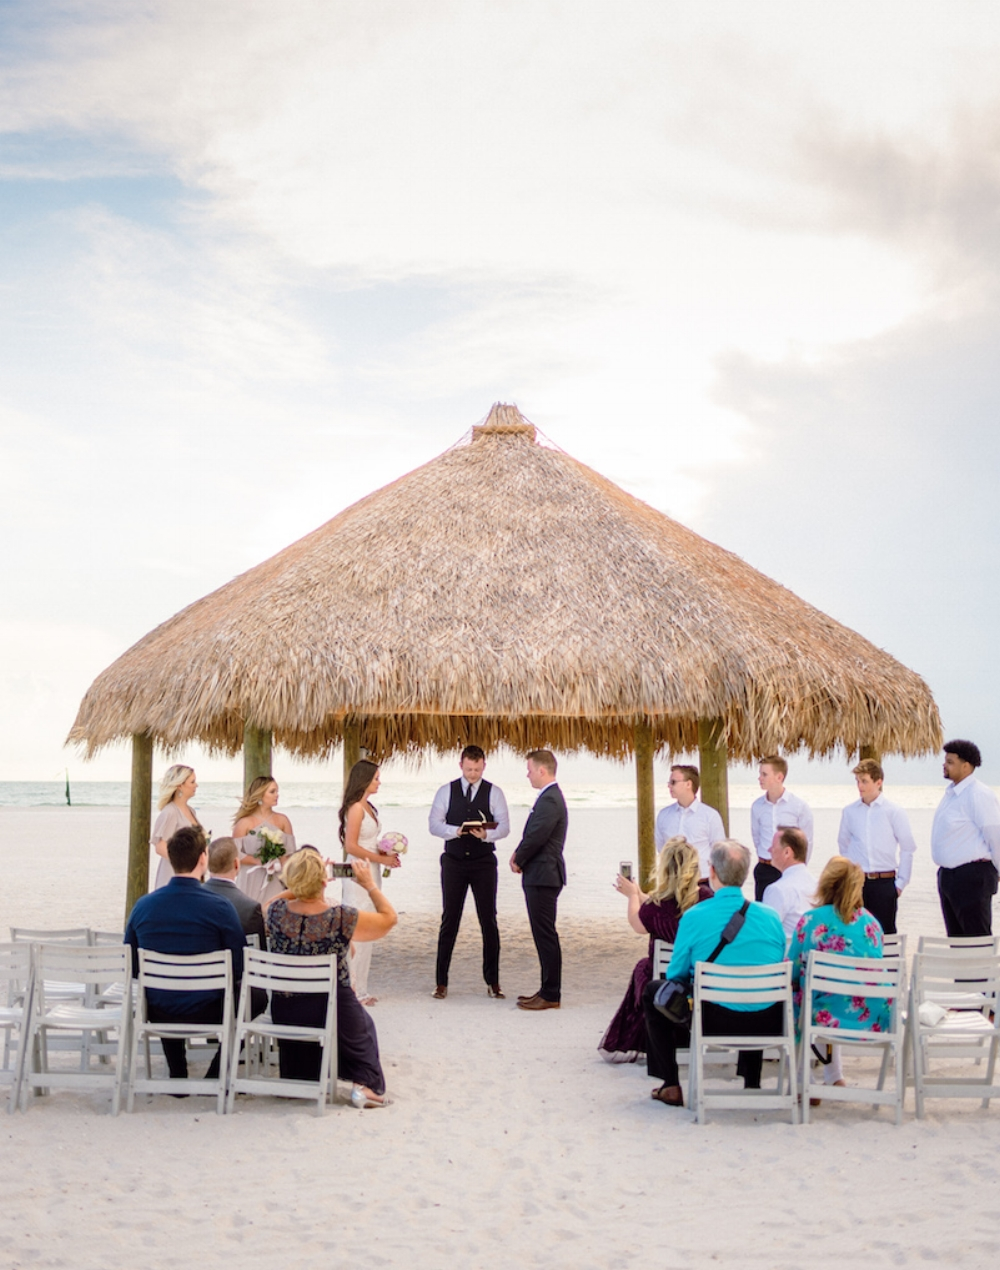 JW Marriott Marco Island Weddings by Matt Steeves Photography 10.jpg